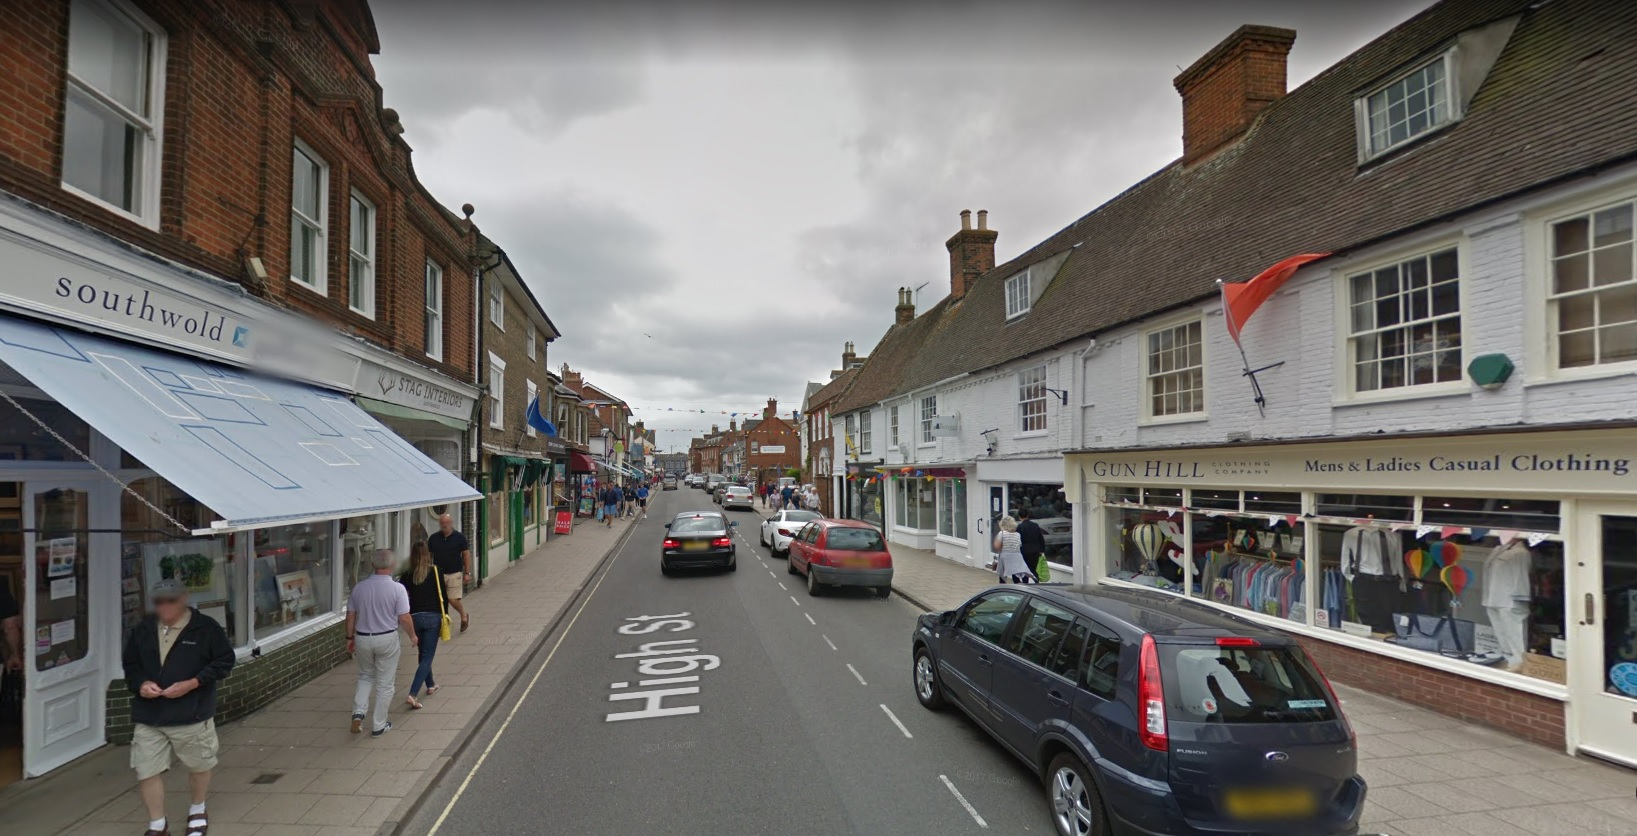 Southwold locals urged to use independent shops more or lose them